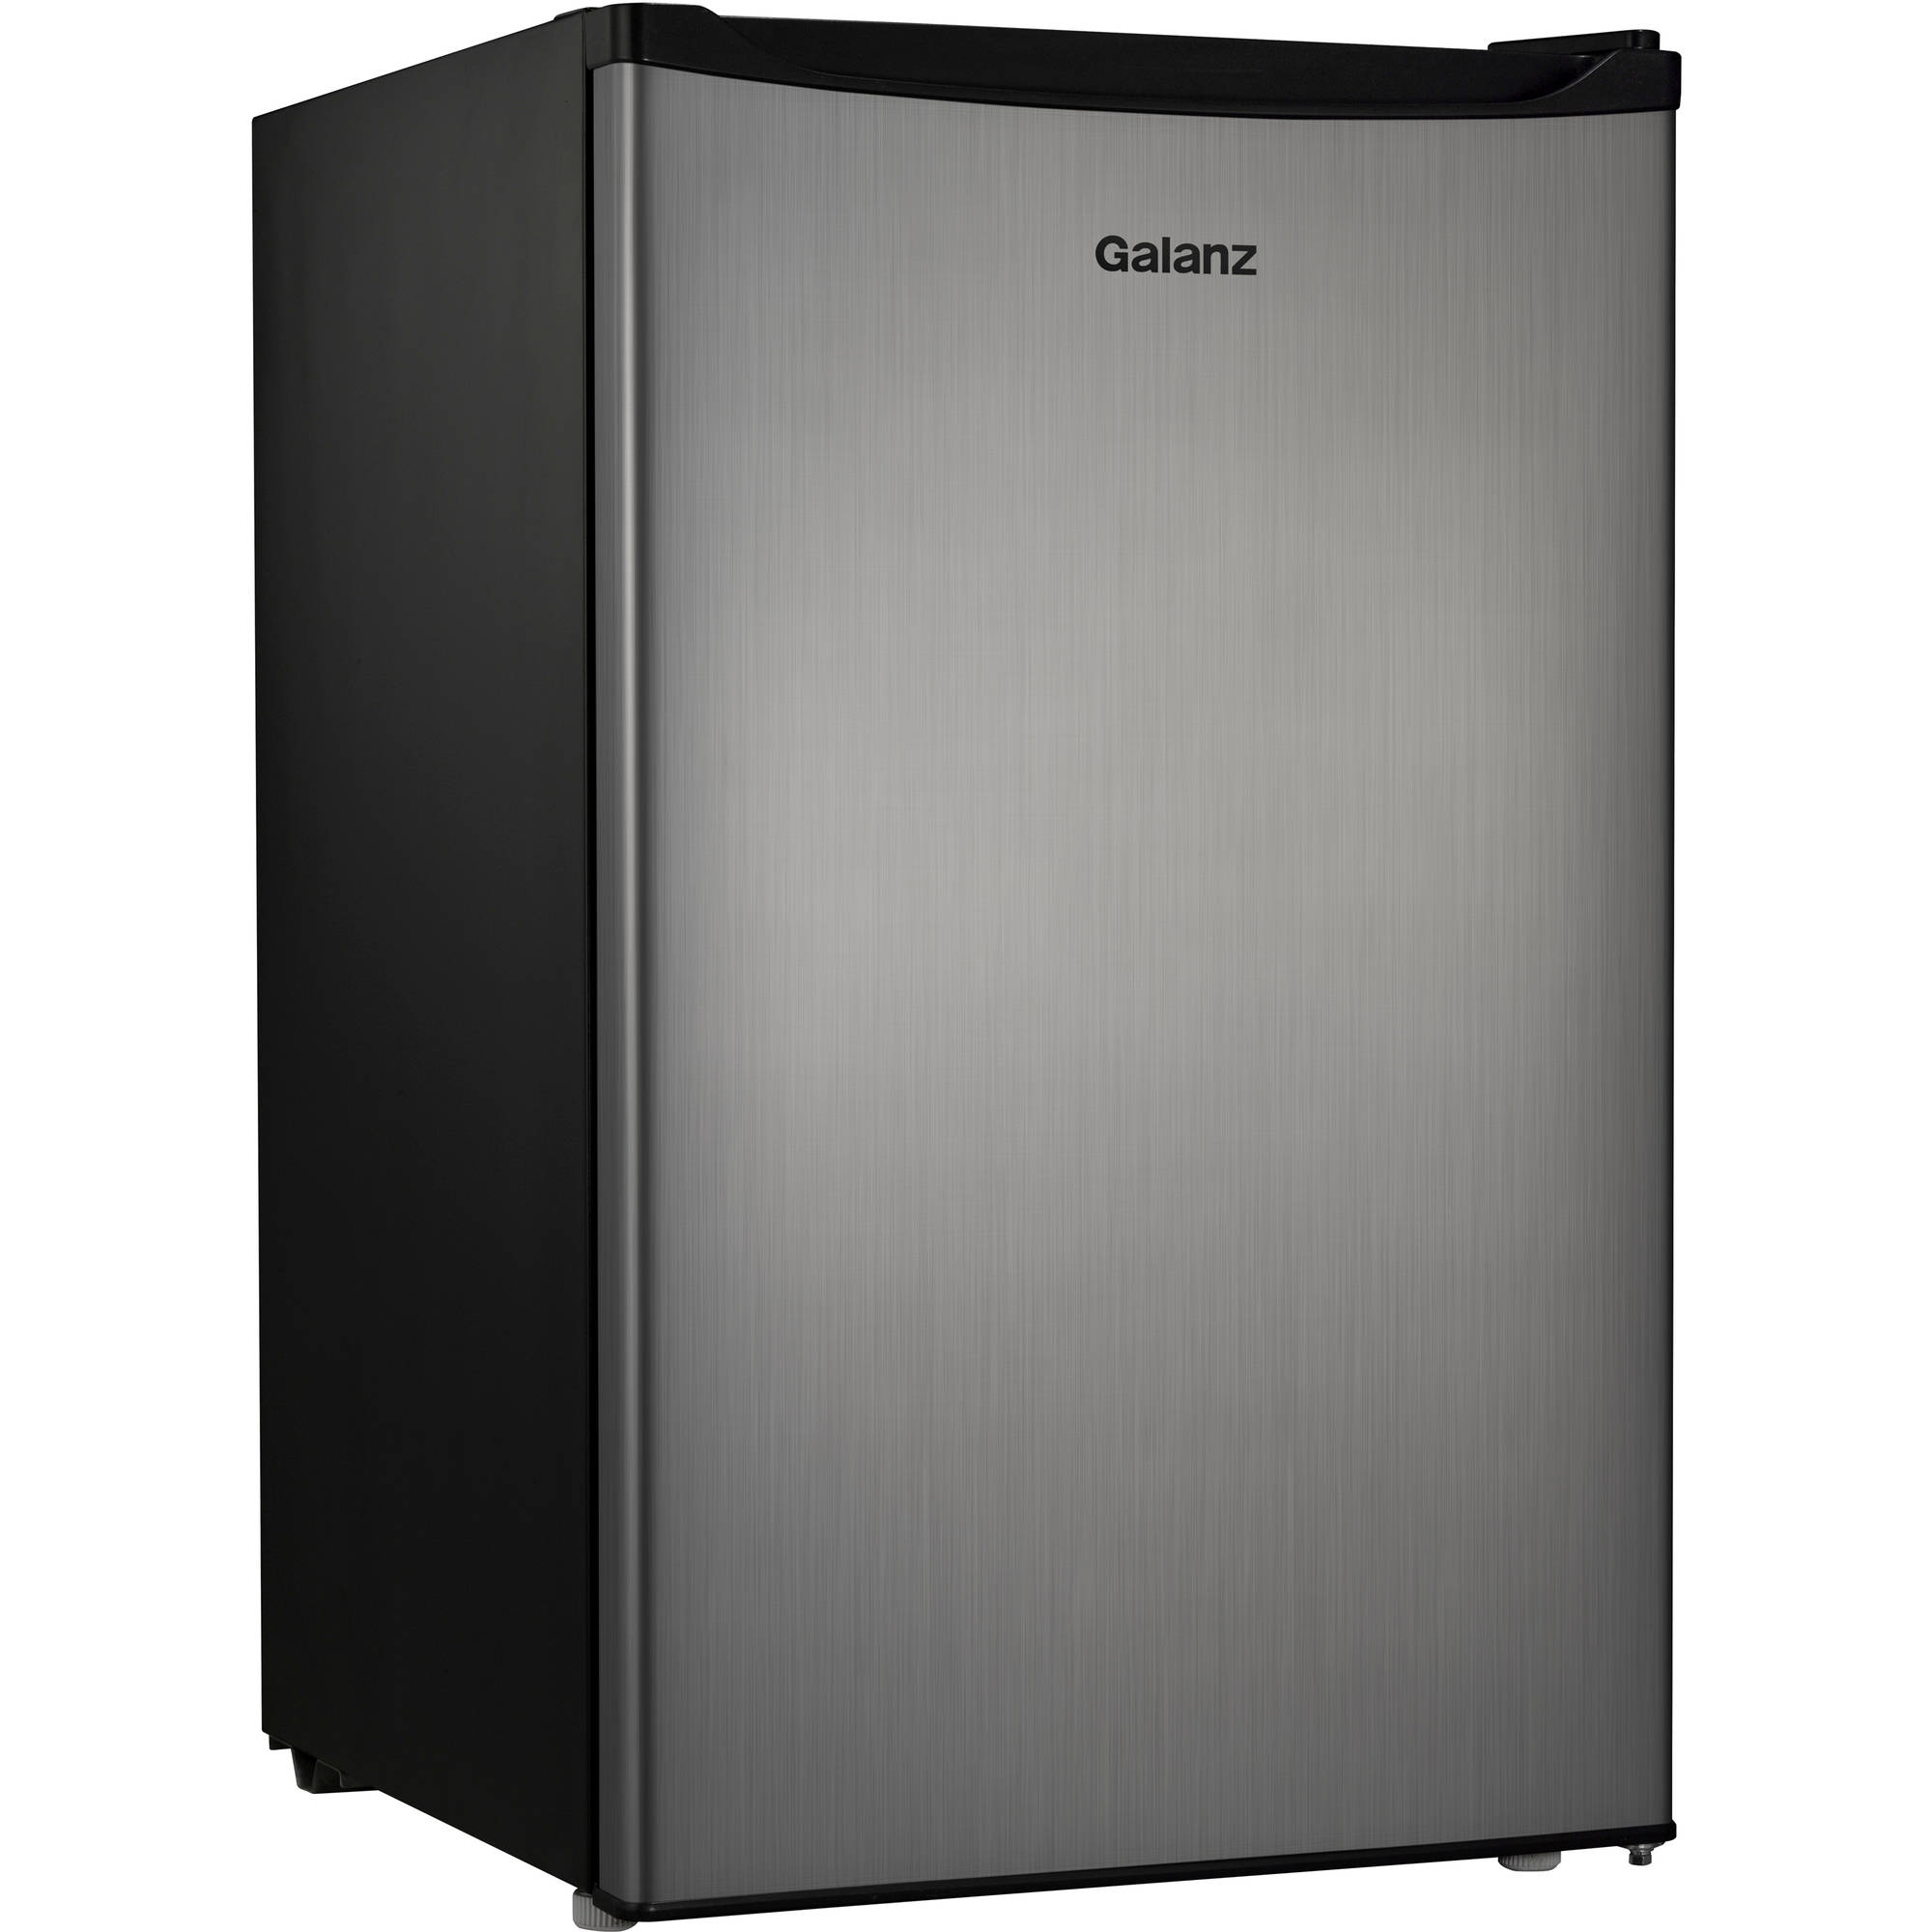 Galanz 4.3 Cu Ft Compact Single Door Refrigerator, Stainless Steel